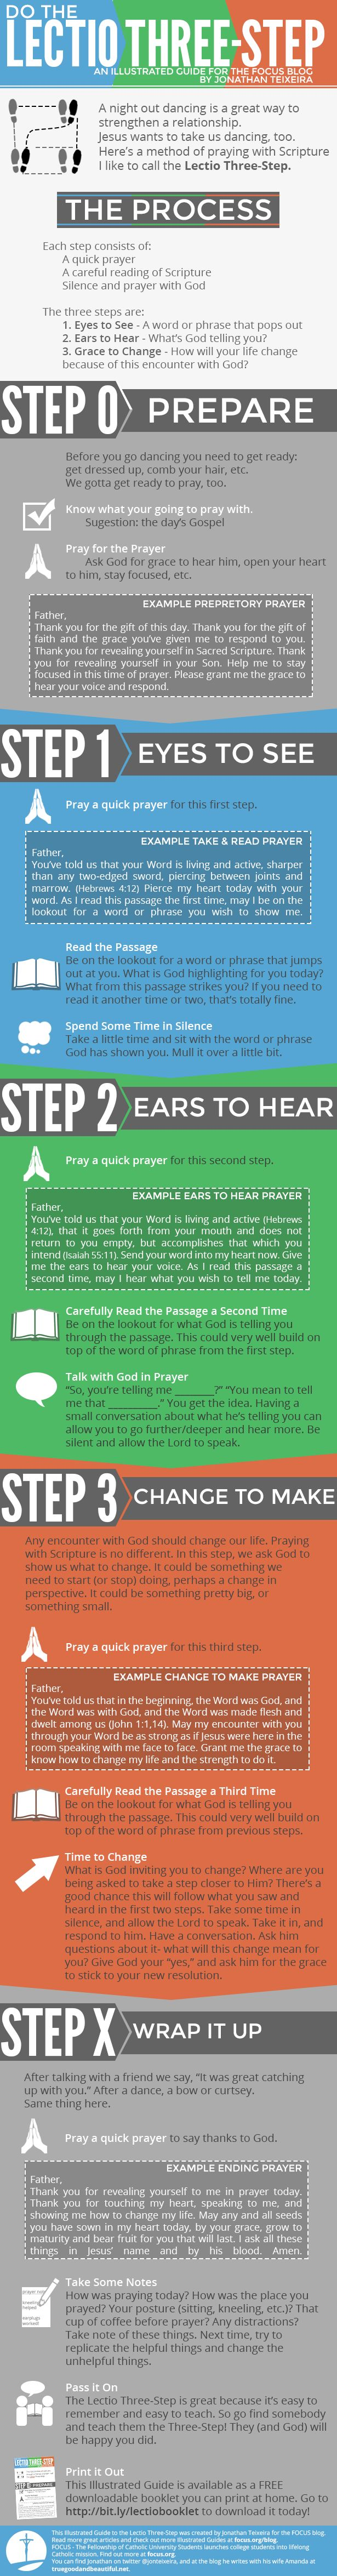 Do the Lectio 3-Step: An Easy Illustrated Guide to Praying Lectio Divina - FOCUS Blog